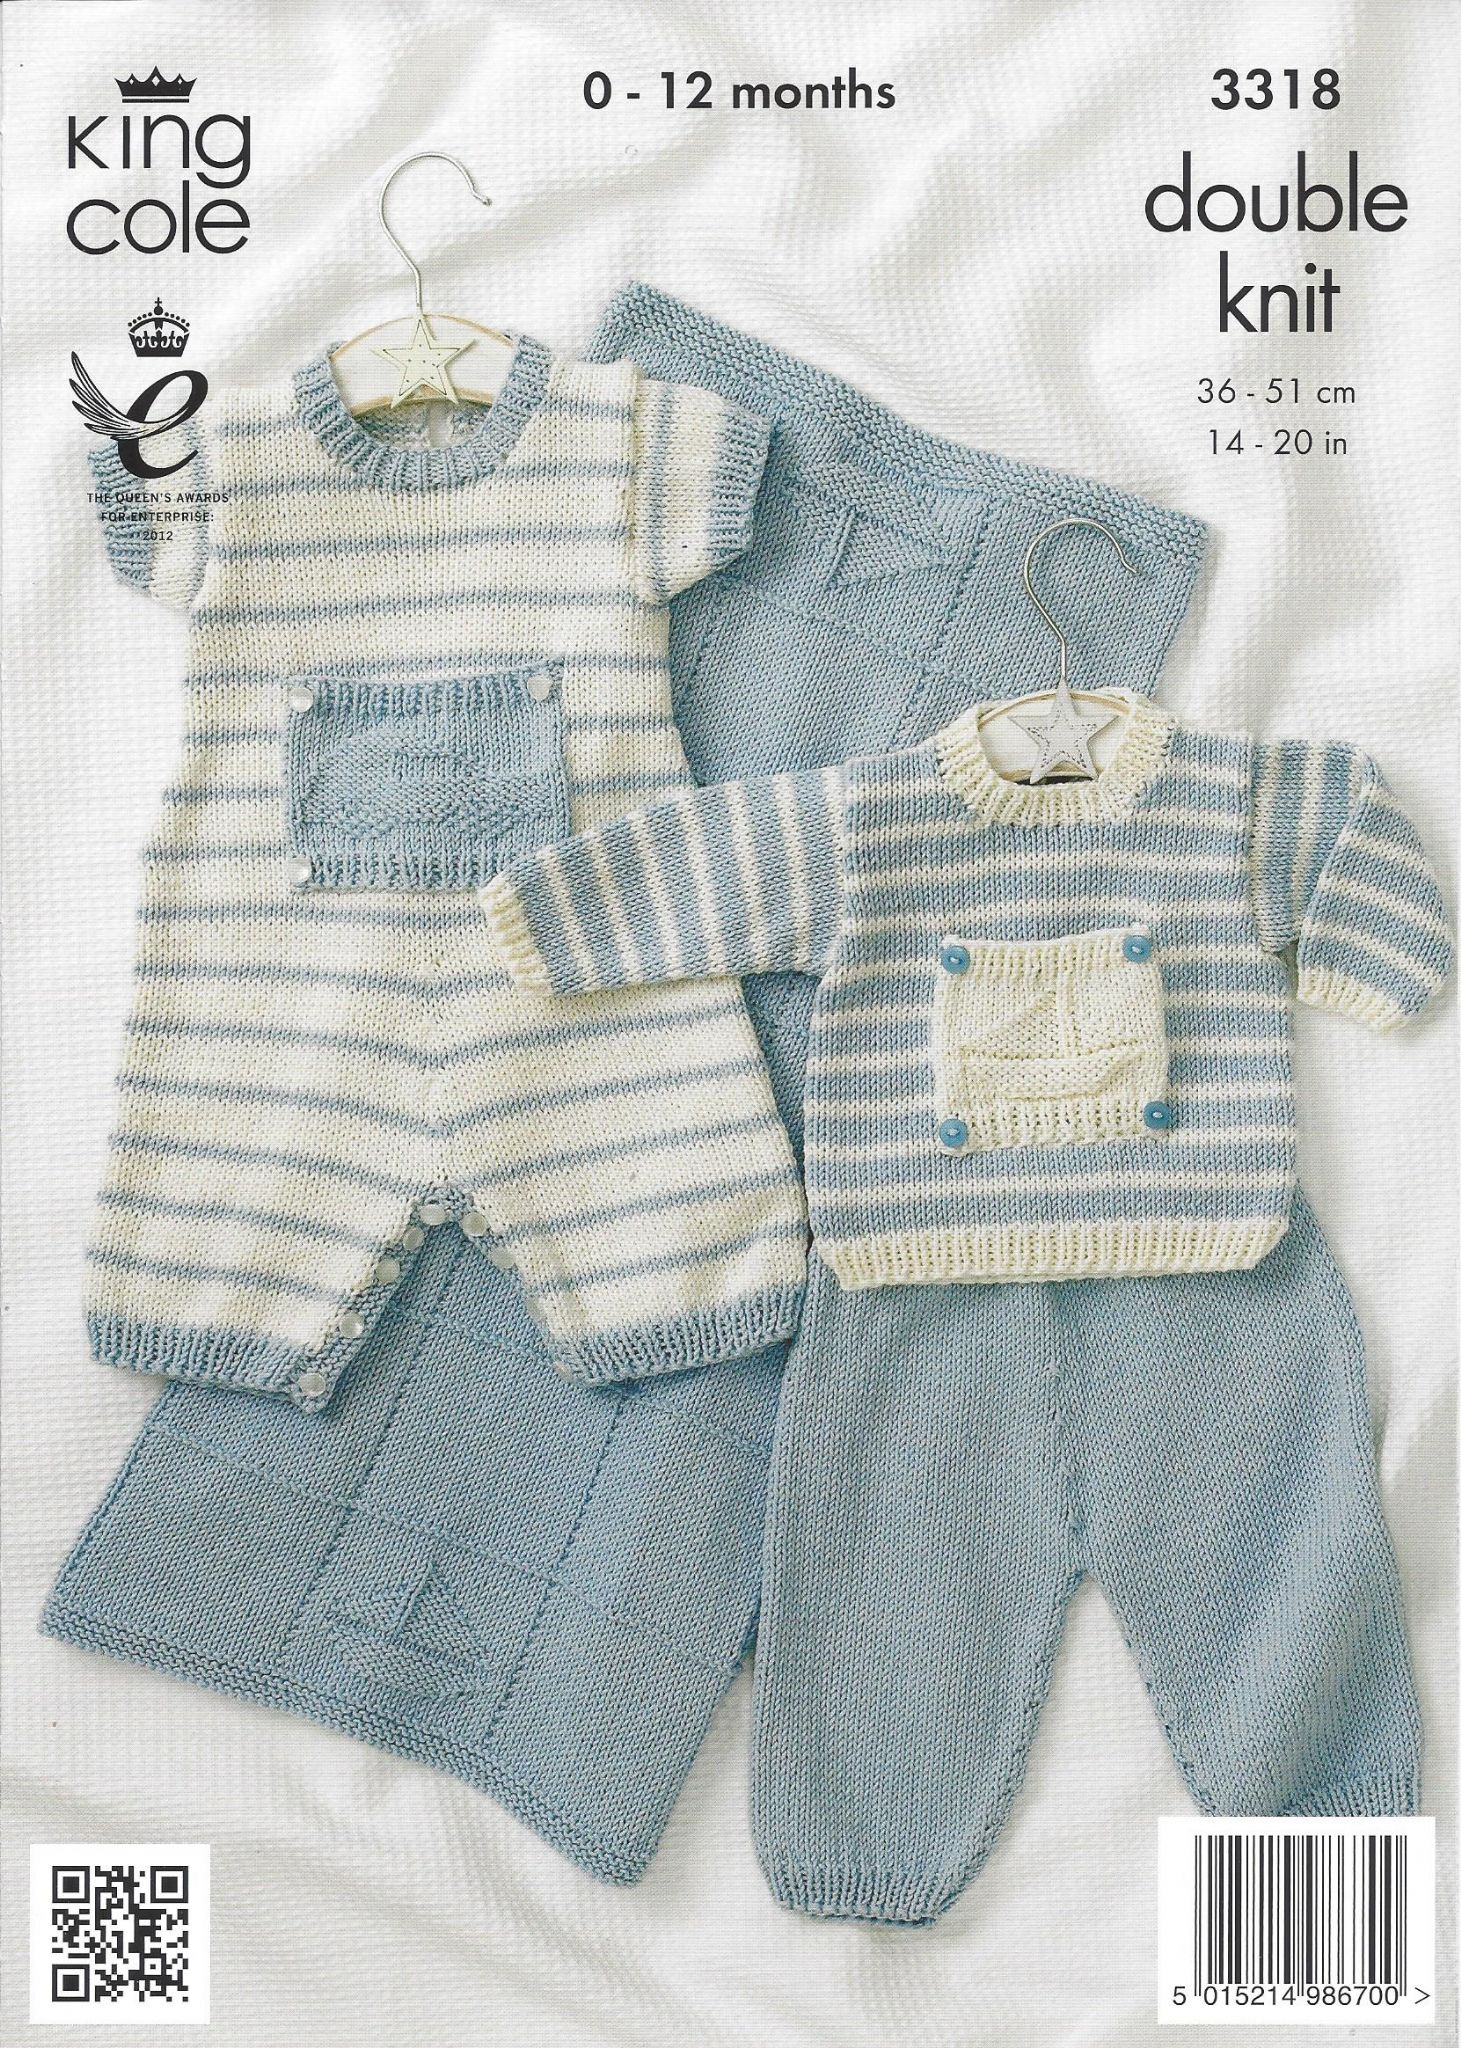 King cole baby dk knitting pattern 3318 sweater pants romper king cole baby dk knitting pattern 3318 sweater pants romper blanket bankloansurffo Image collections